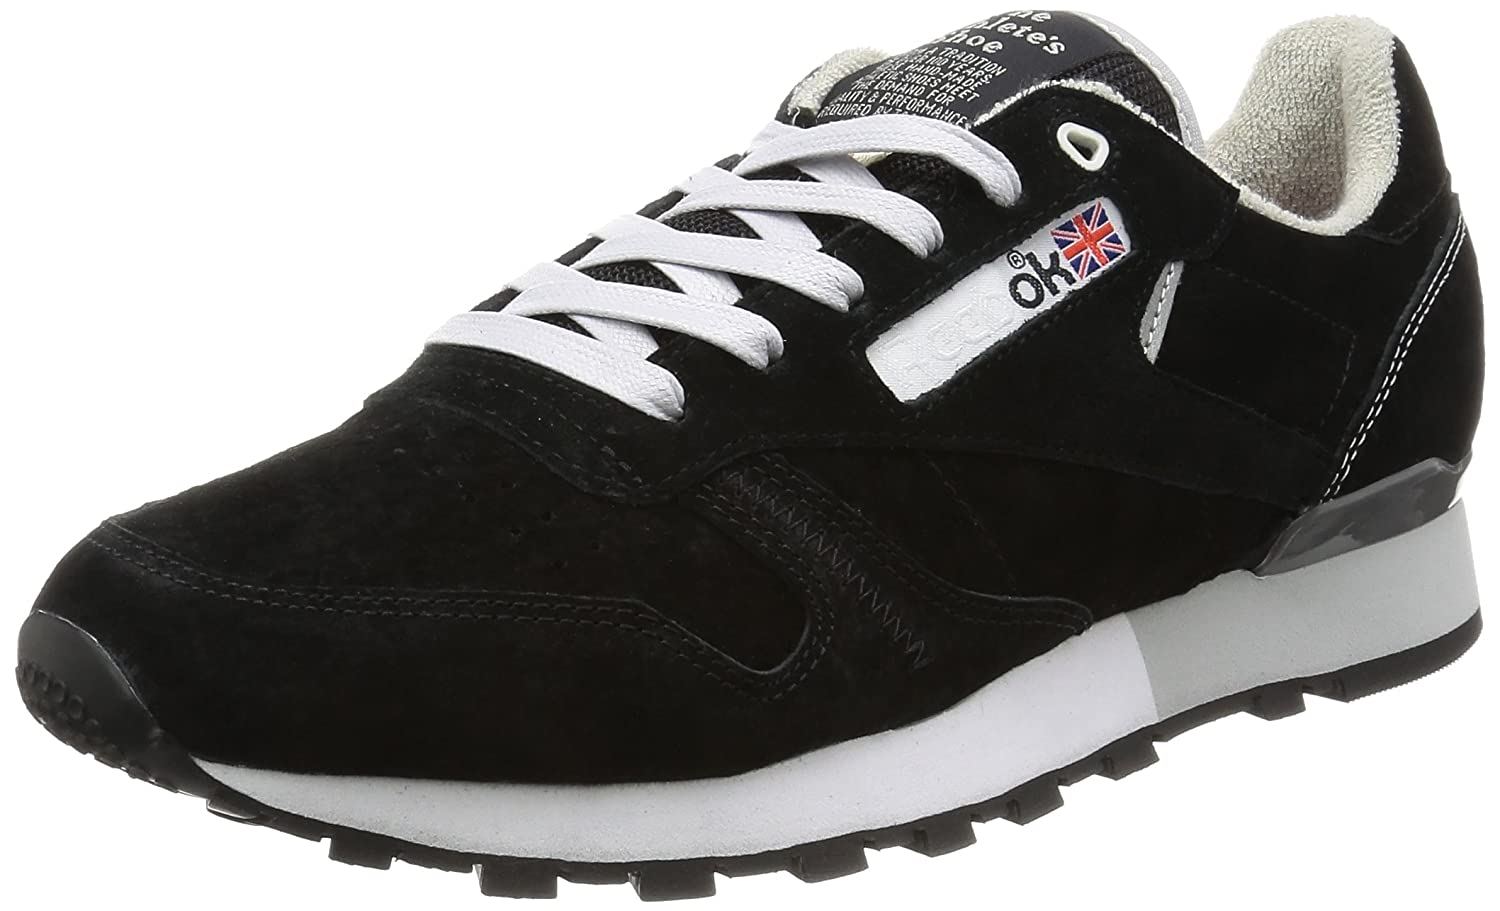 Tênis Reebok Garbstore Classic Leather Black Lifestyle (40